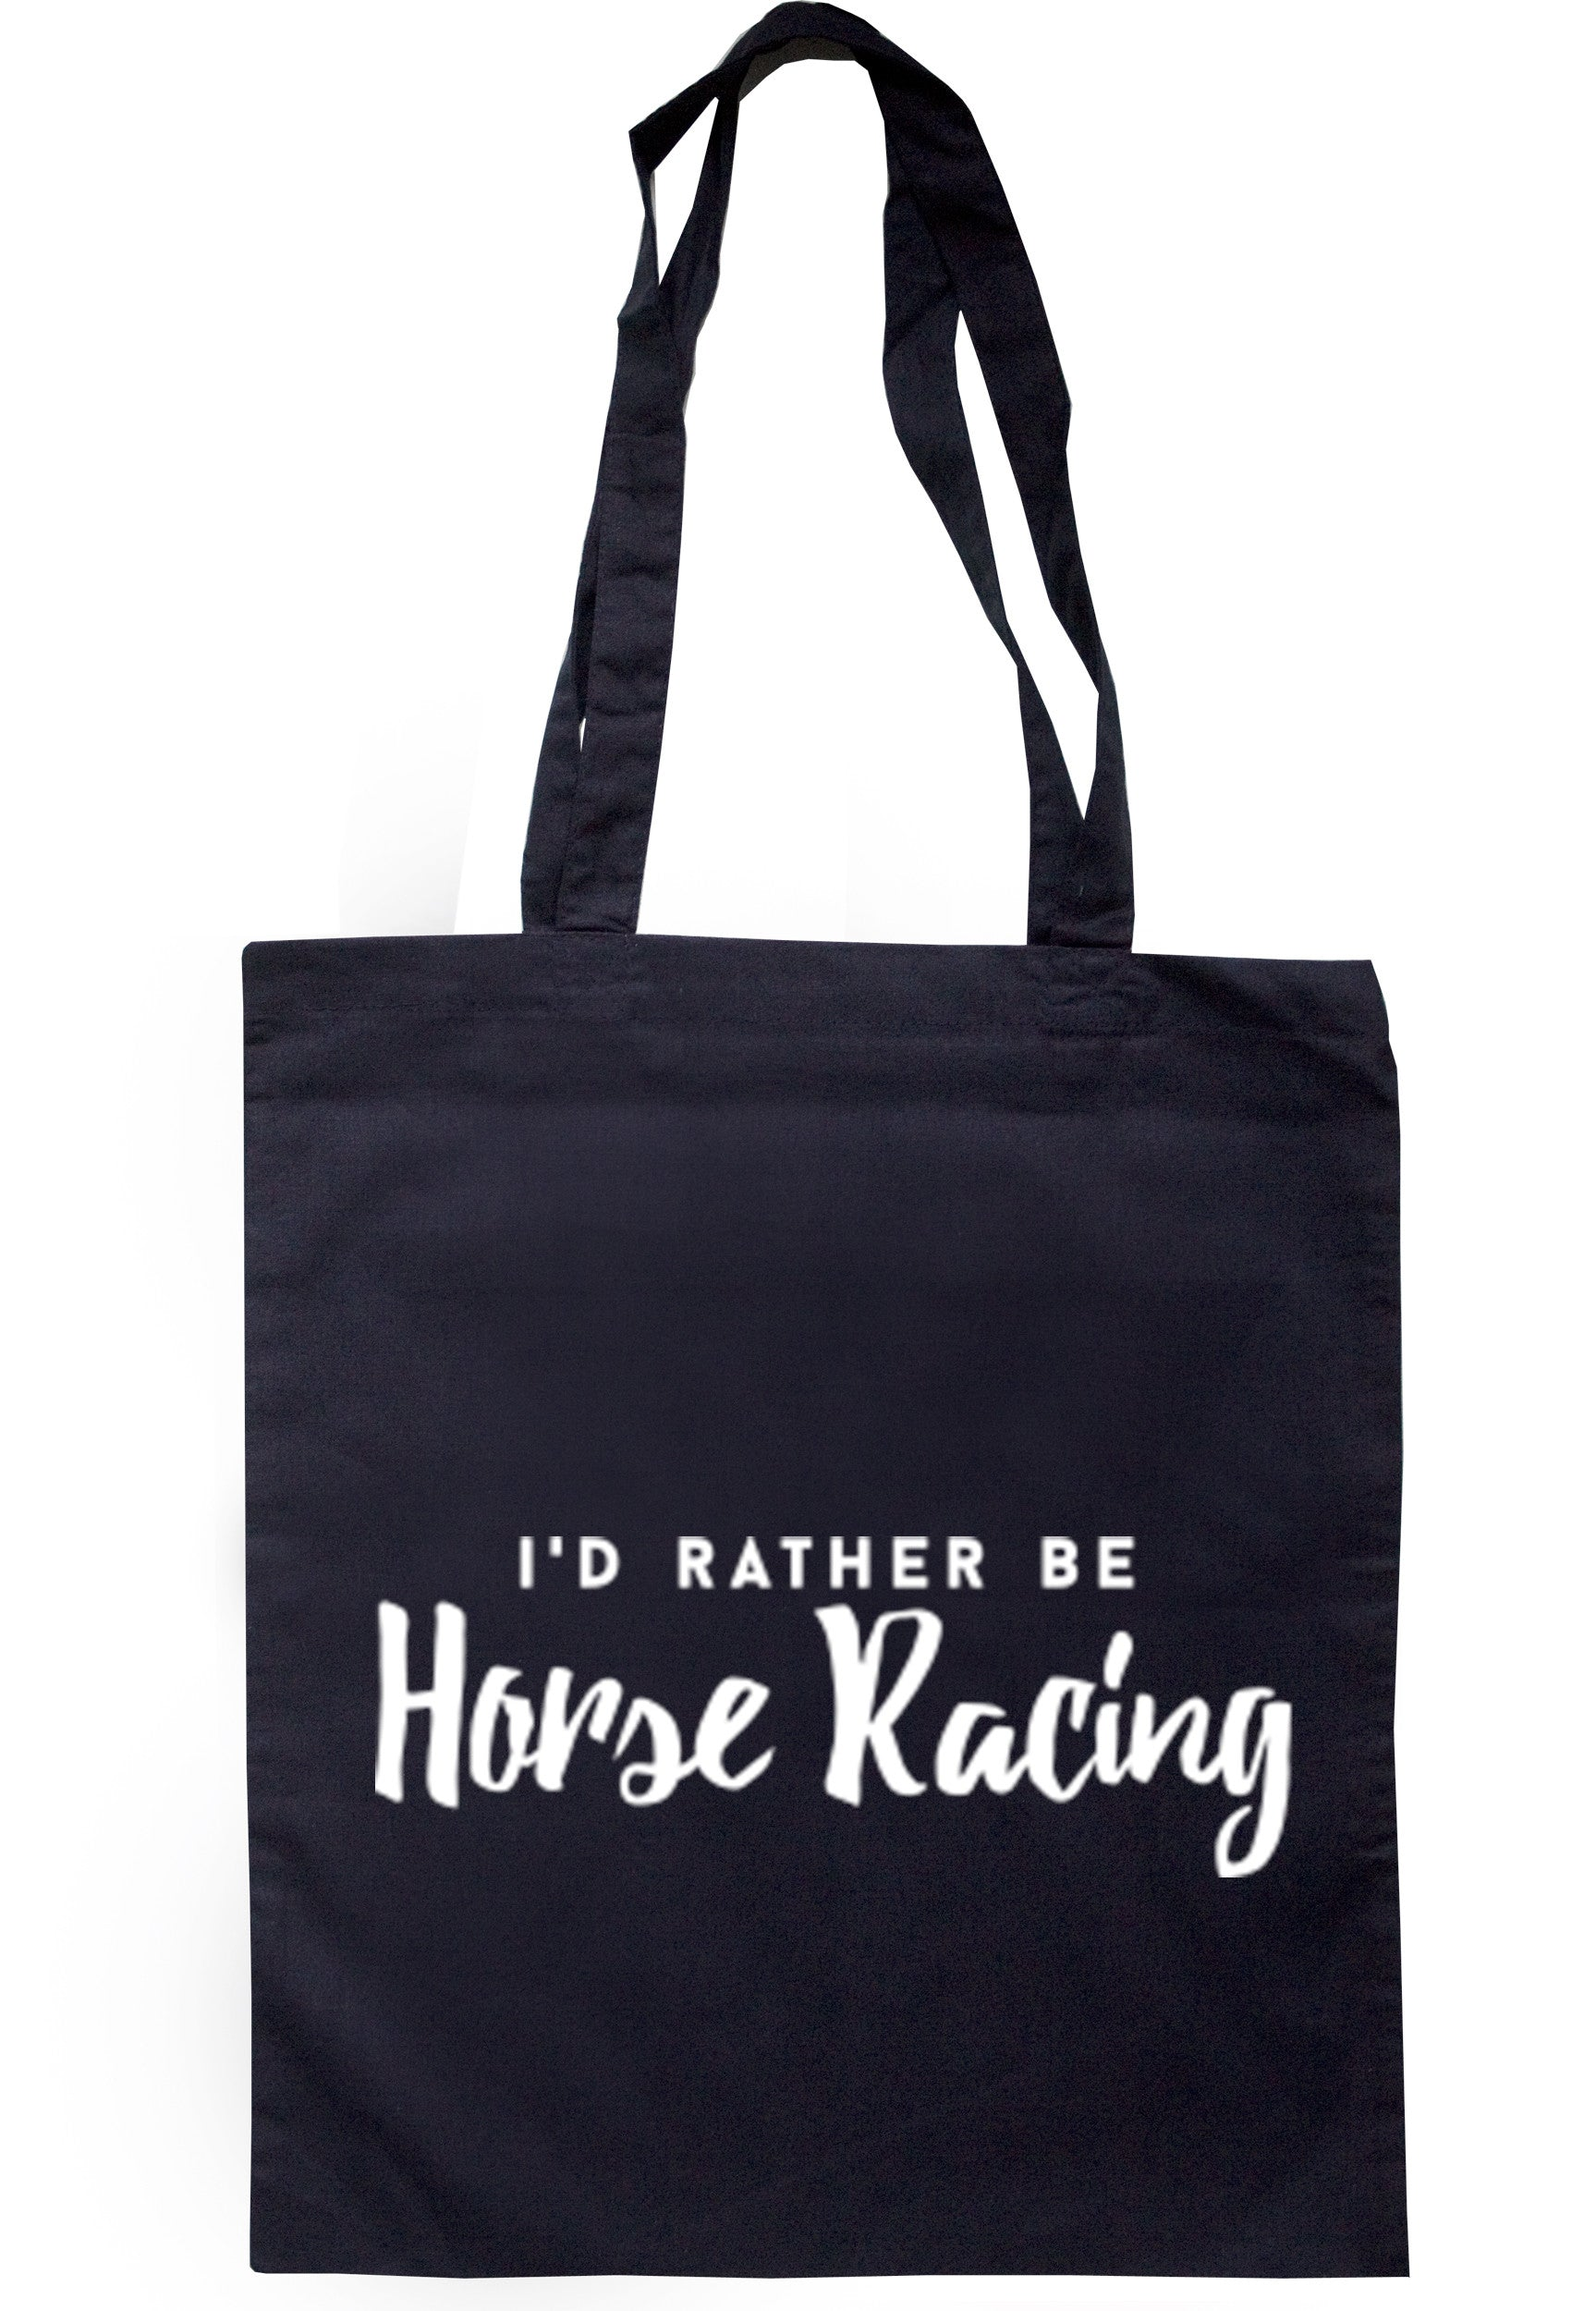 I'd Rather Be Horse Racing Tote Bag TB0160 - Illustrated Identity Ltd.